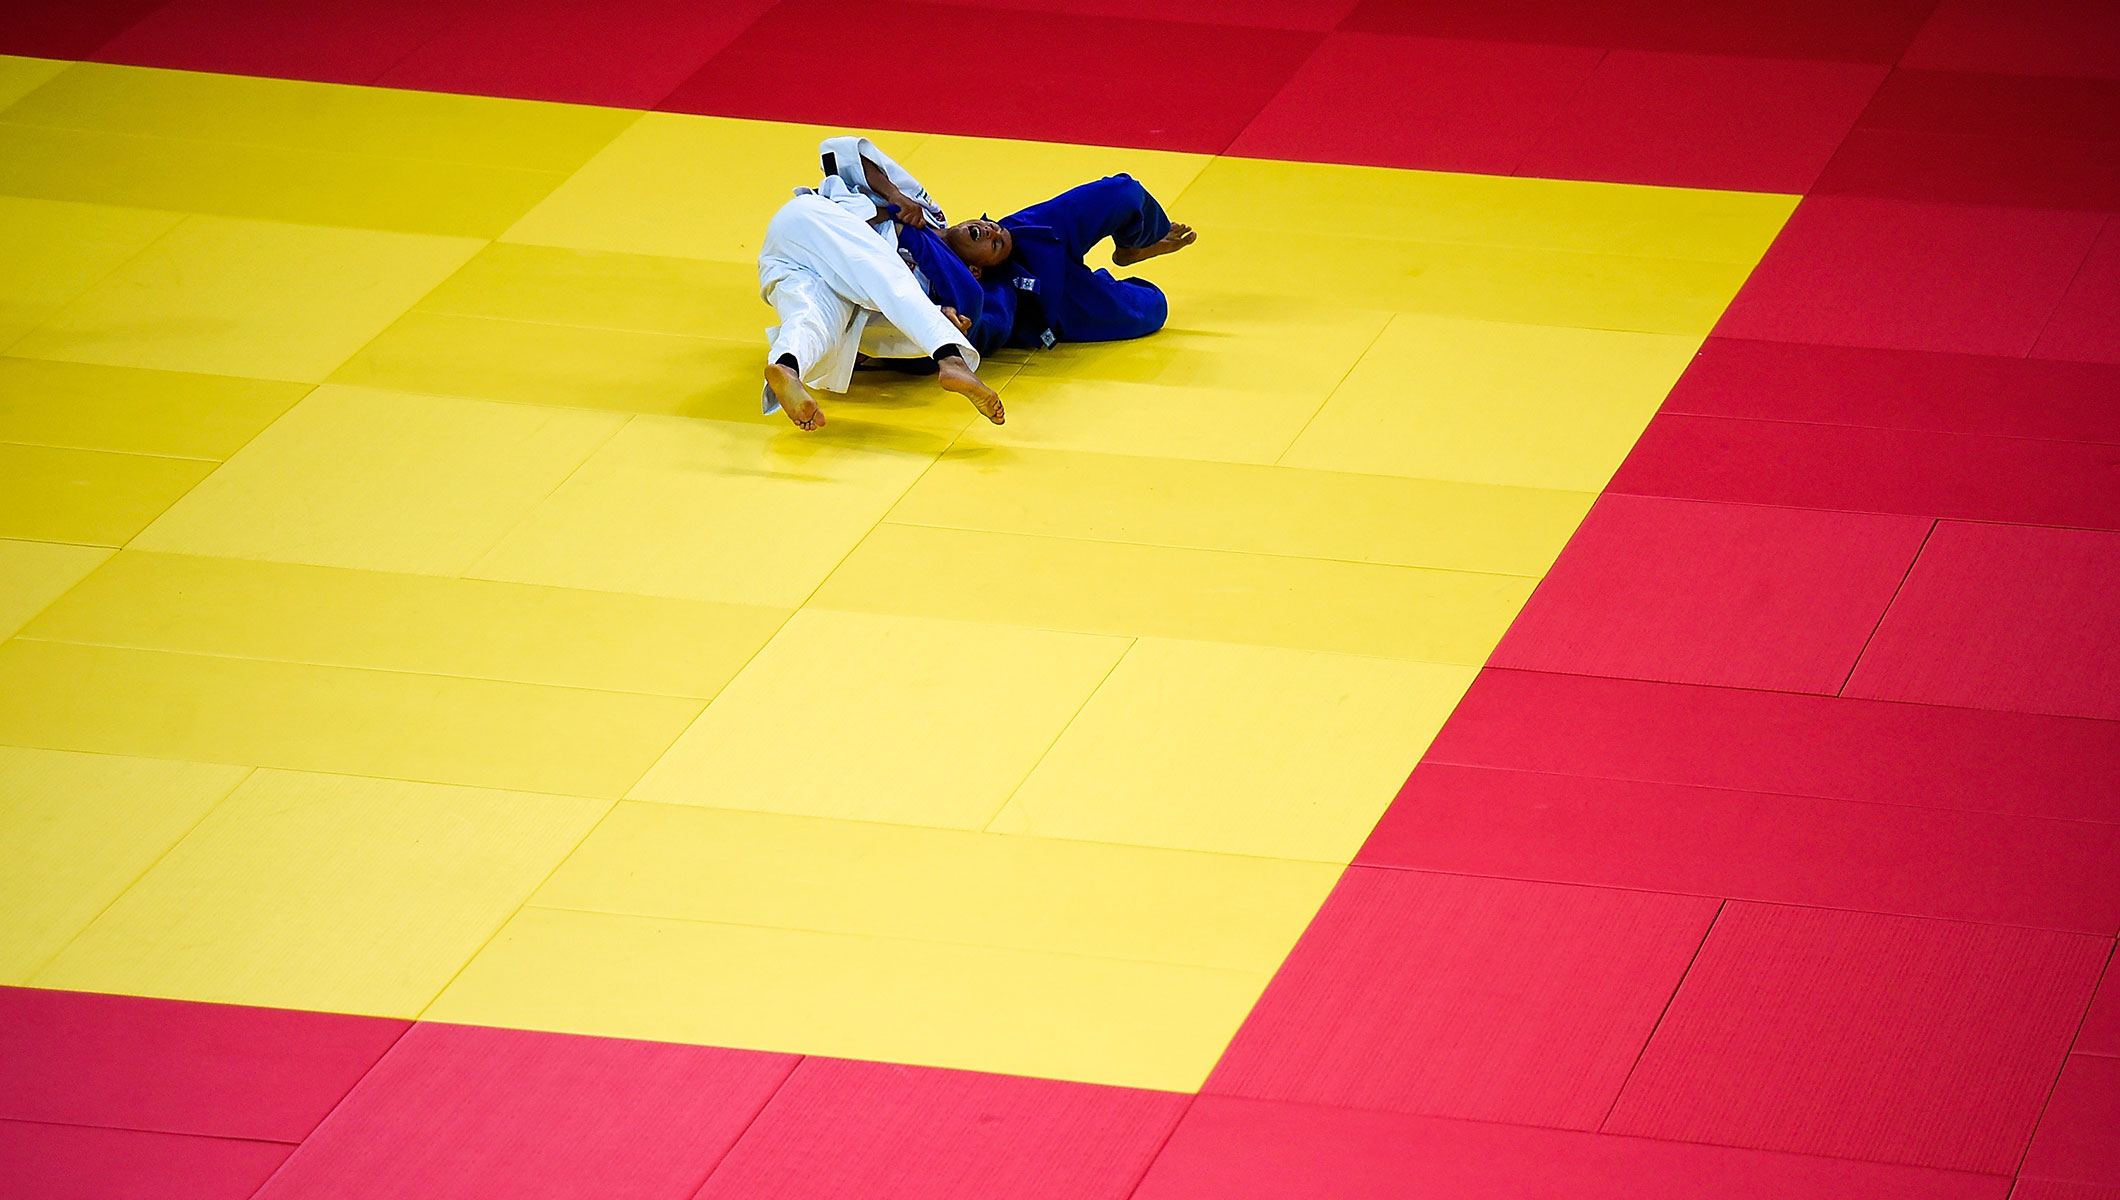 Aquece Rio - Judo - Dojo general view